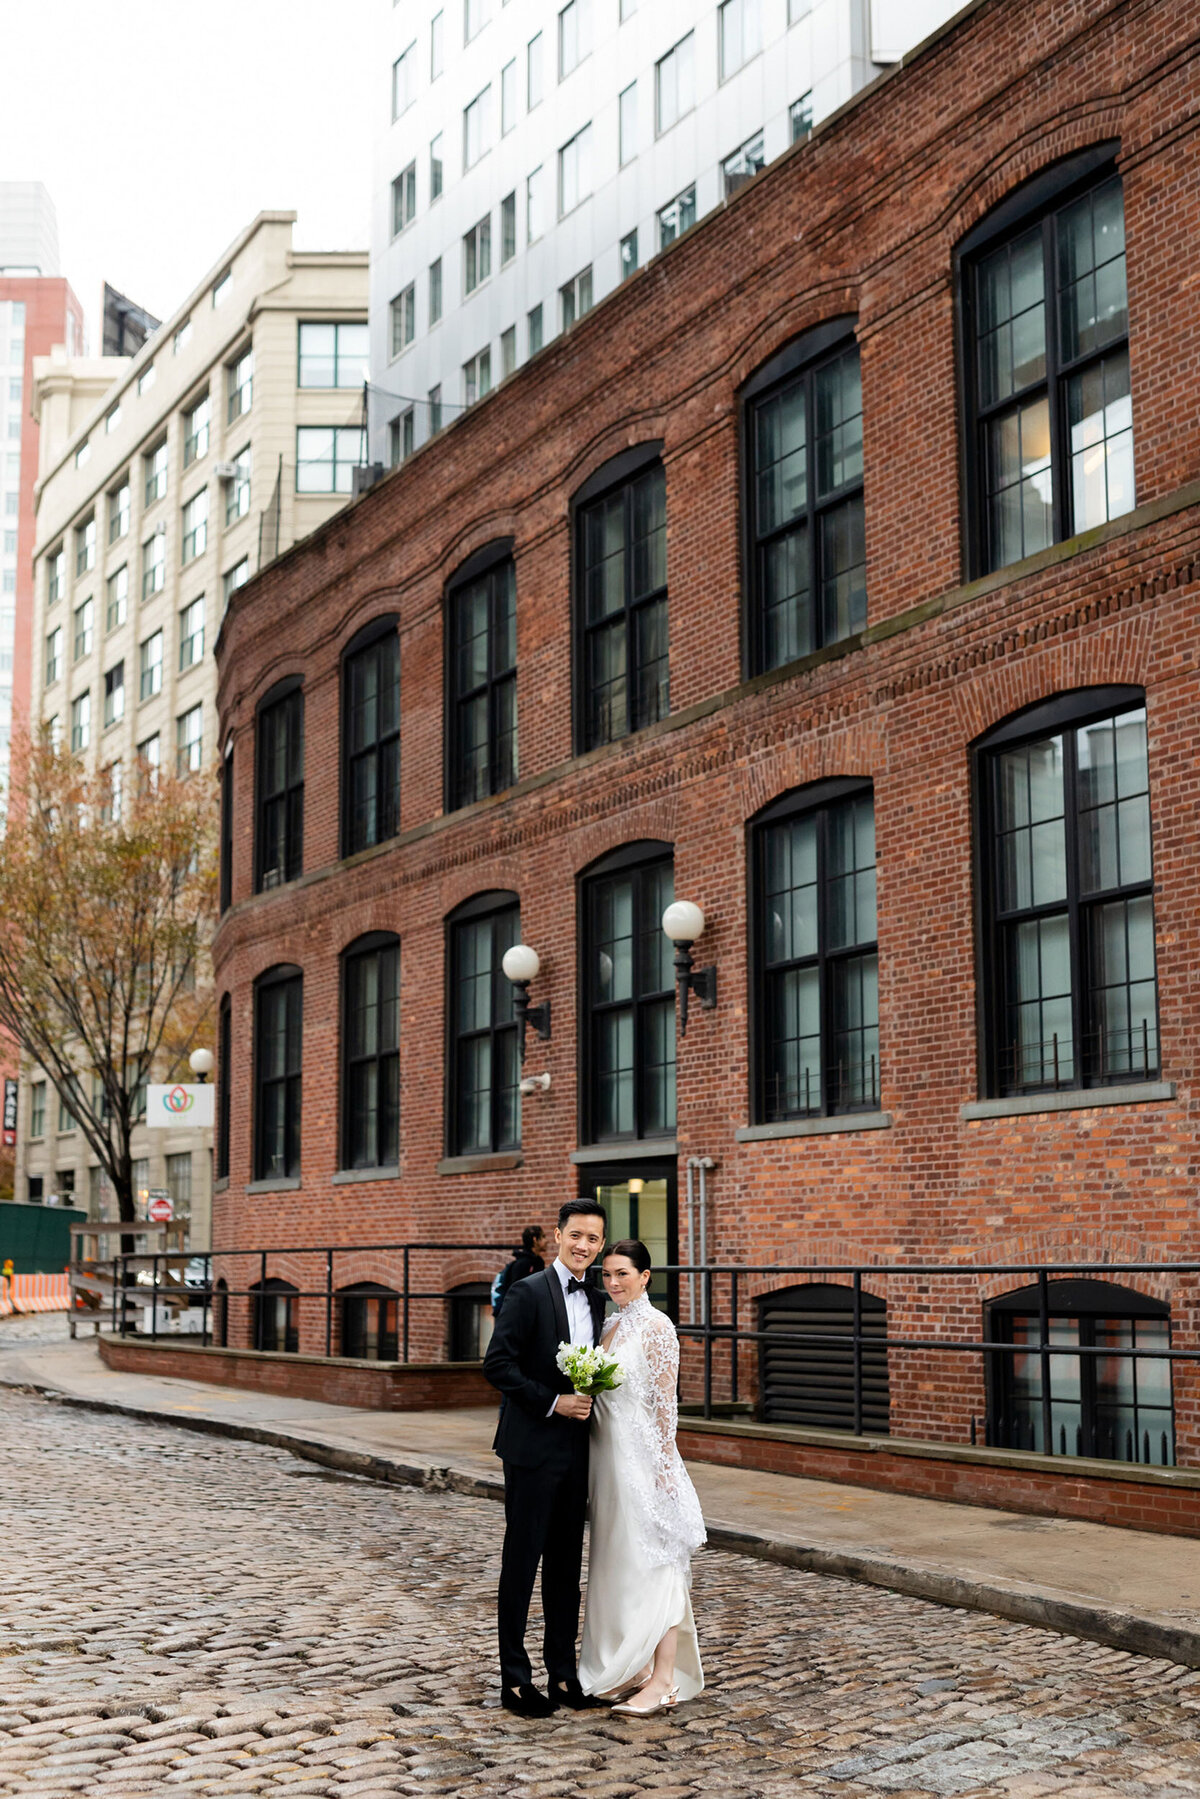 Dumbo_Loft_0227_Cate_Bryan_Wedding_1473